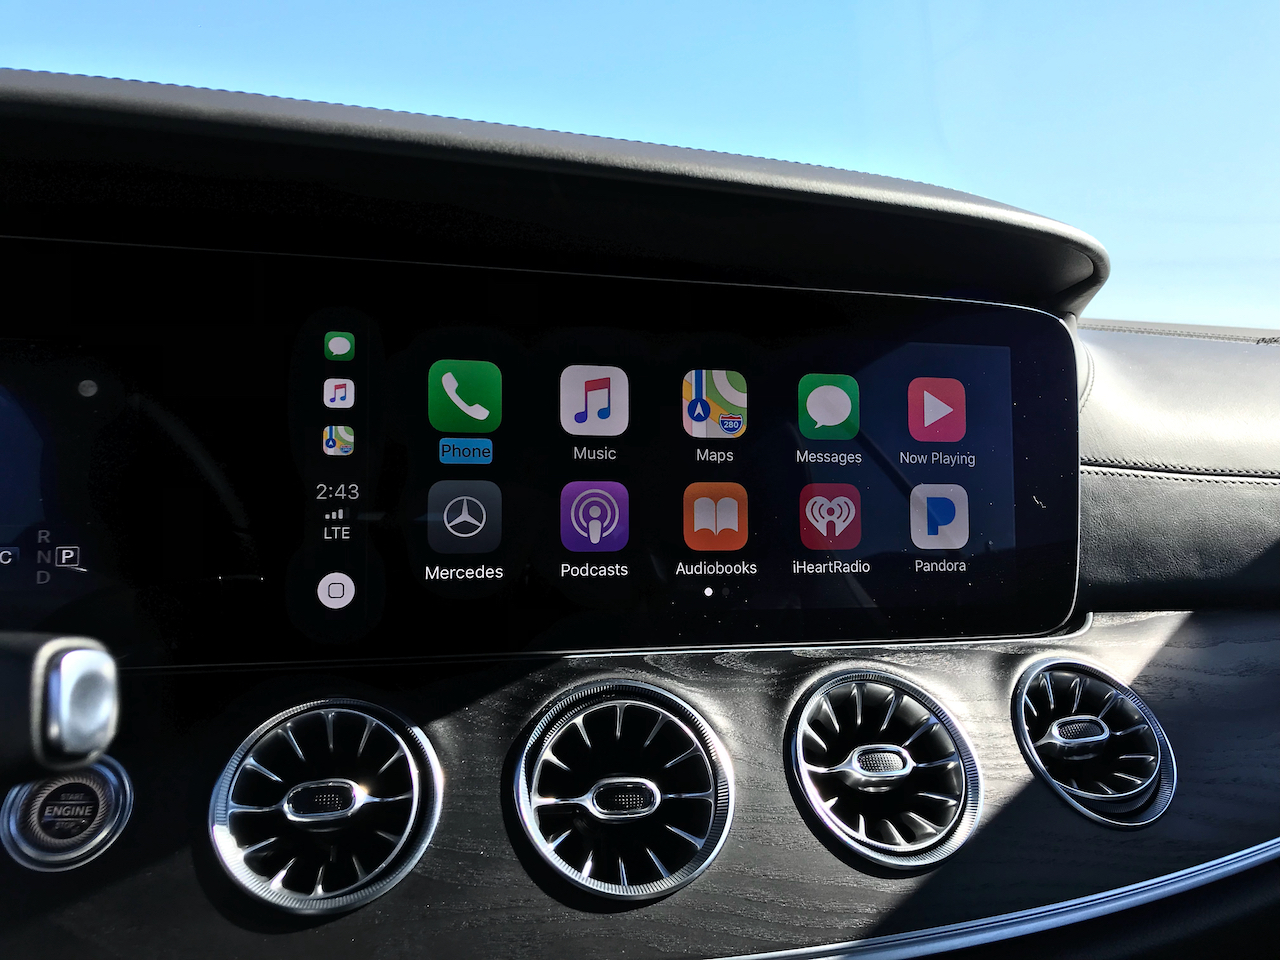 MB_Carplay_1280_960